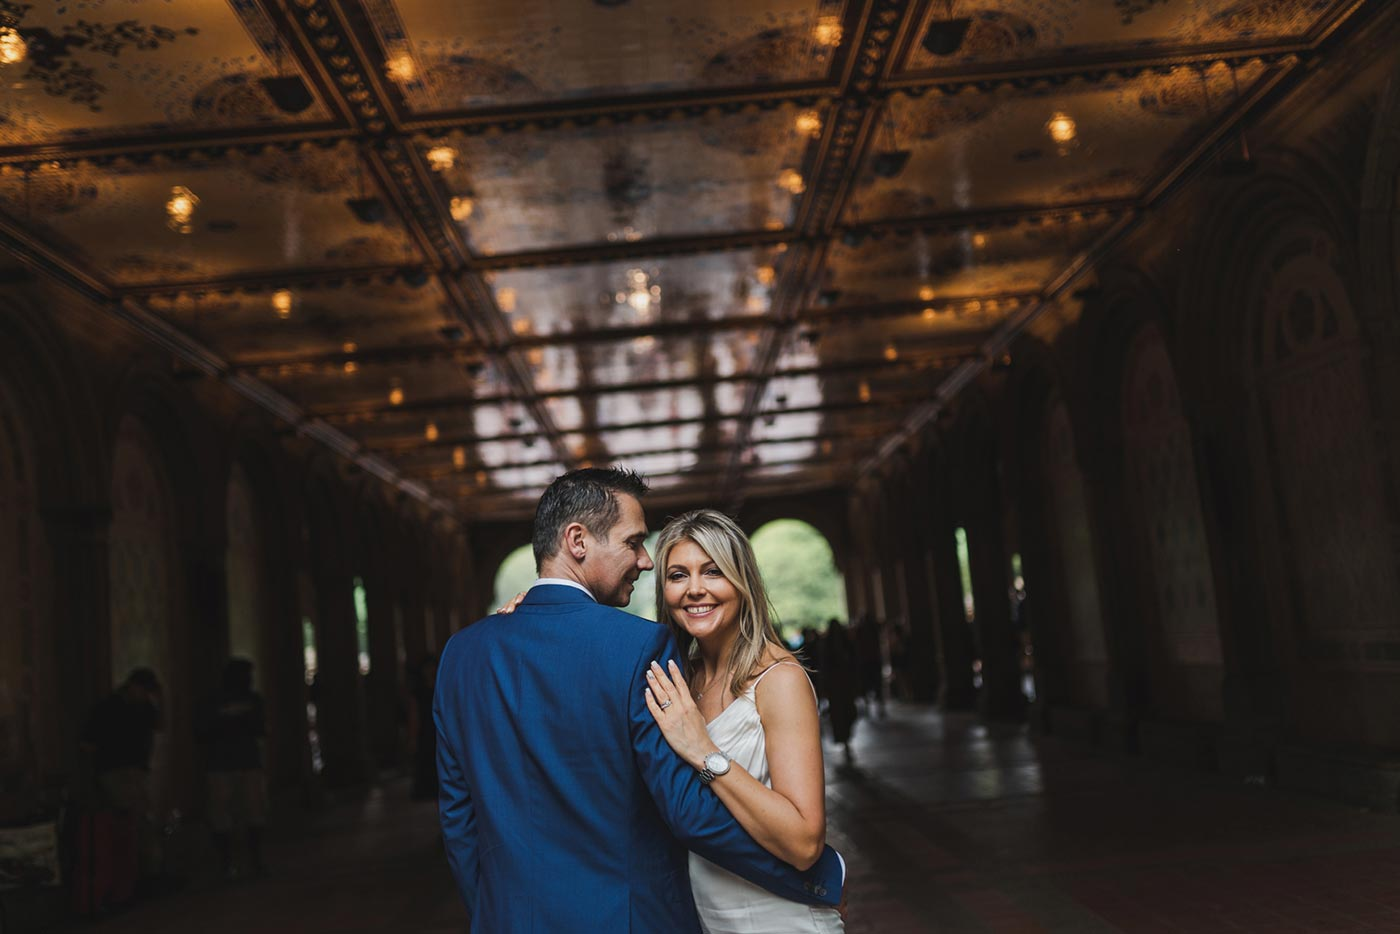 Weddings by Hanel -06.01.19 - Jane & Neil - Conservatory Garden Elopement - 37